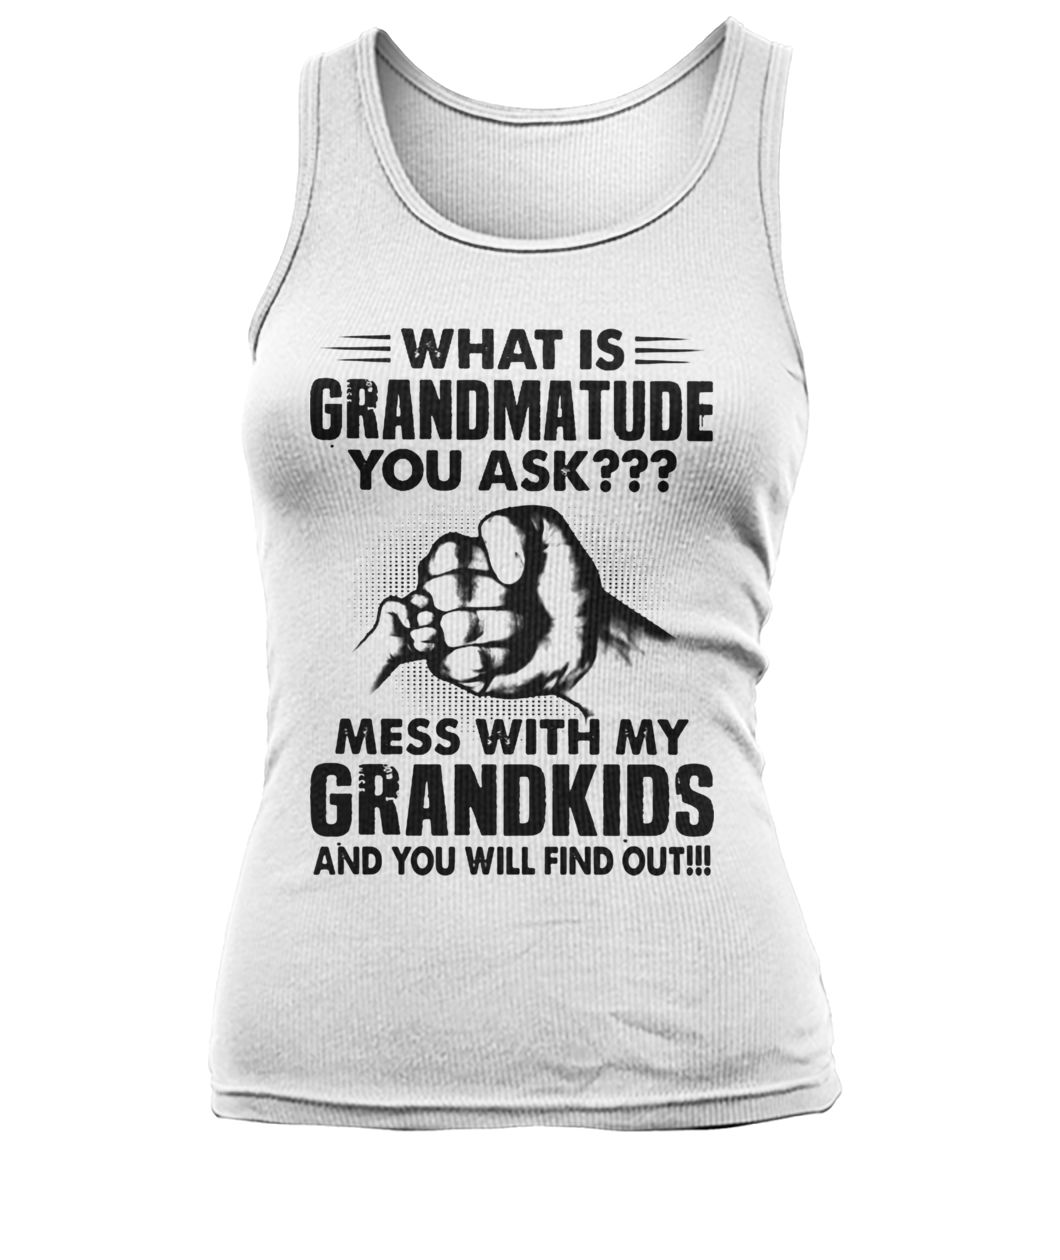 What is grandmatude you ask mess with my grandkids and you will find out women's tank top